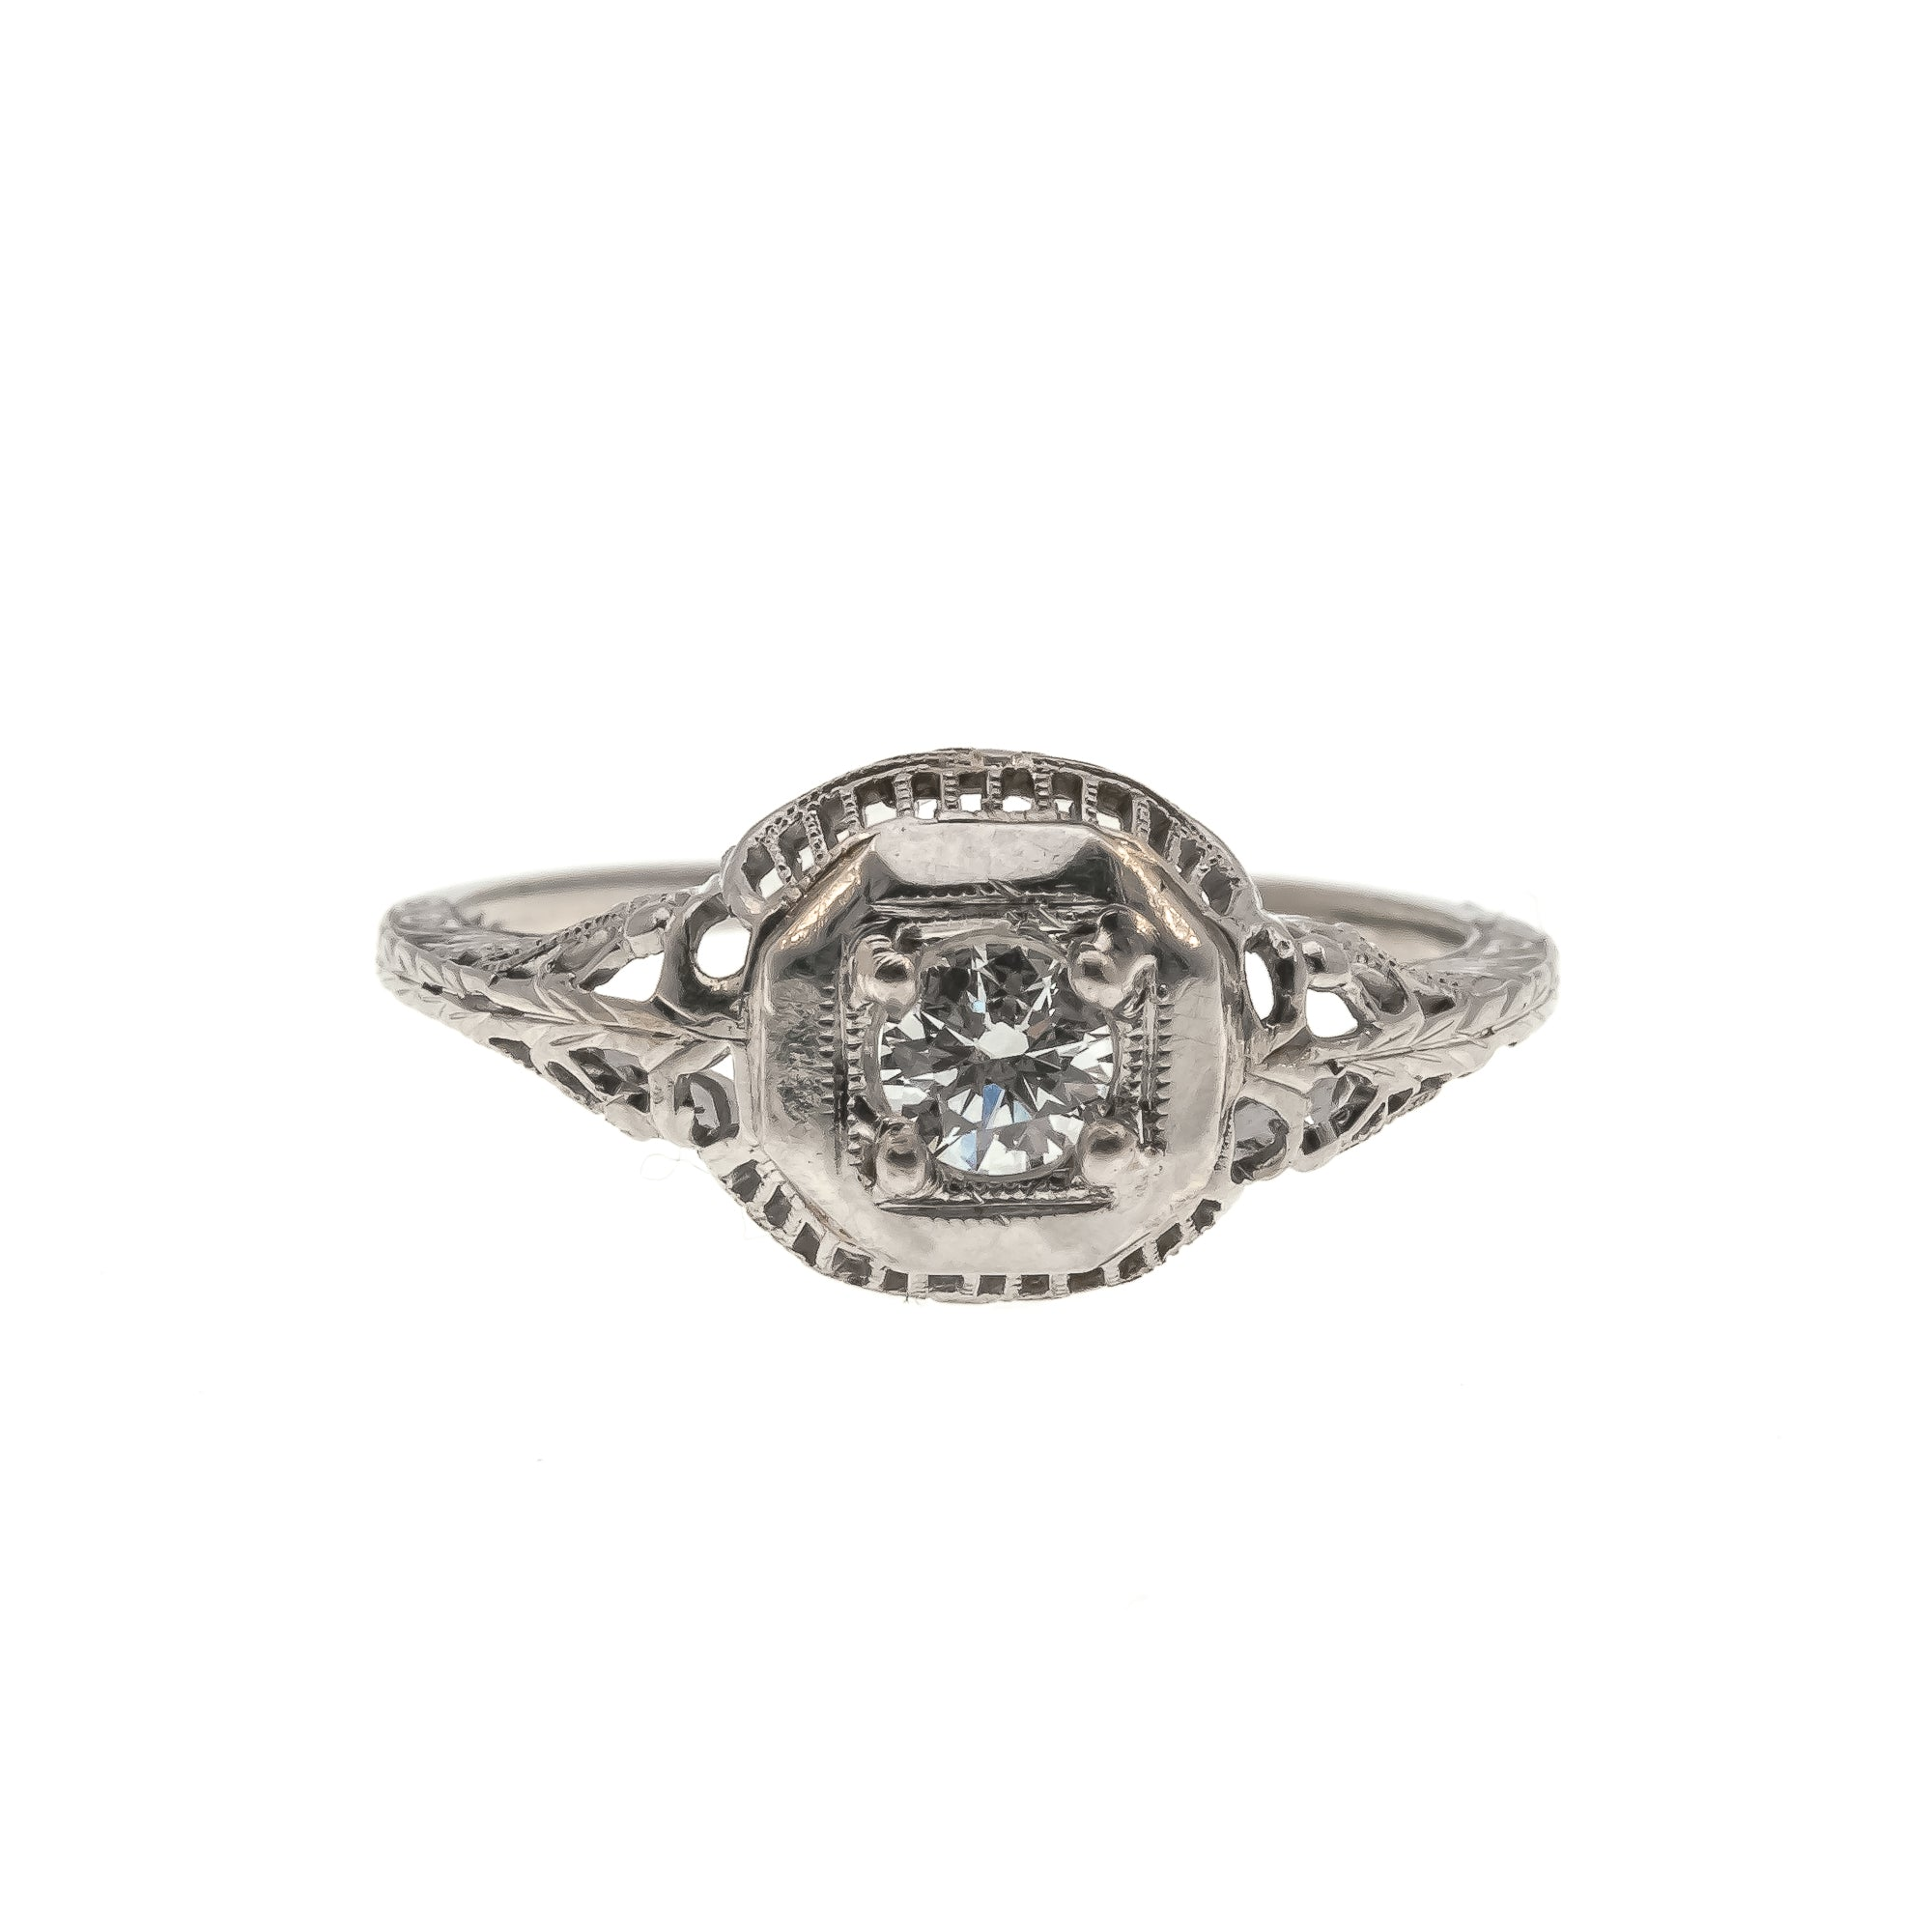 Art Deco Dream - 18K Diamond Filigree Ring (ADR096)